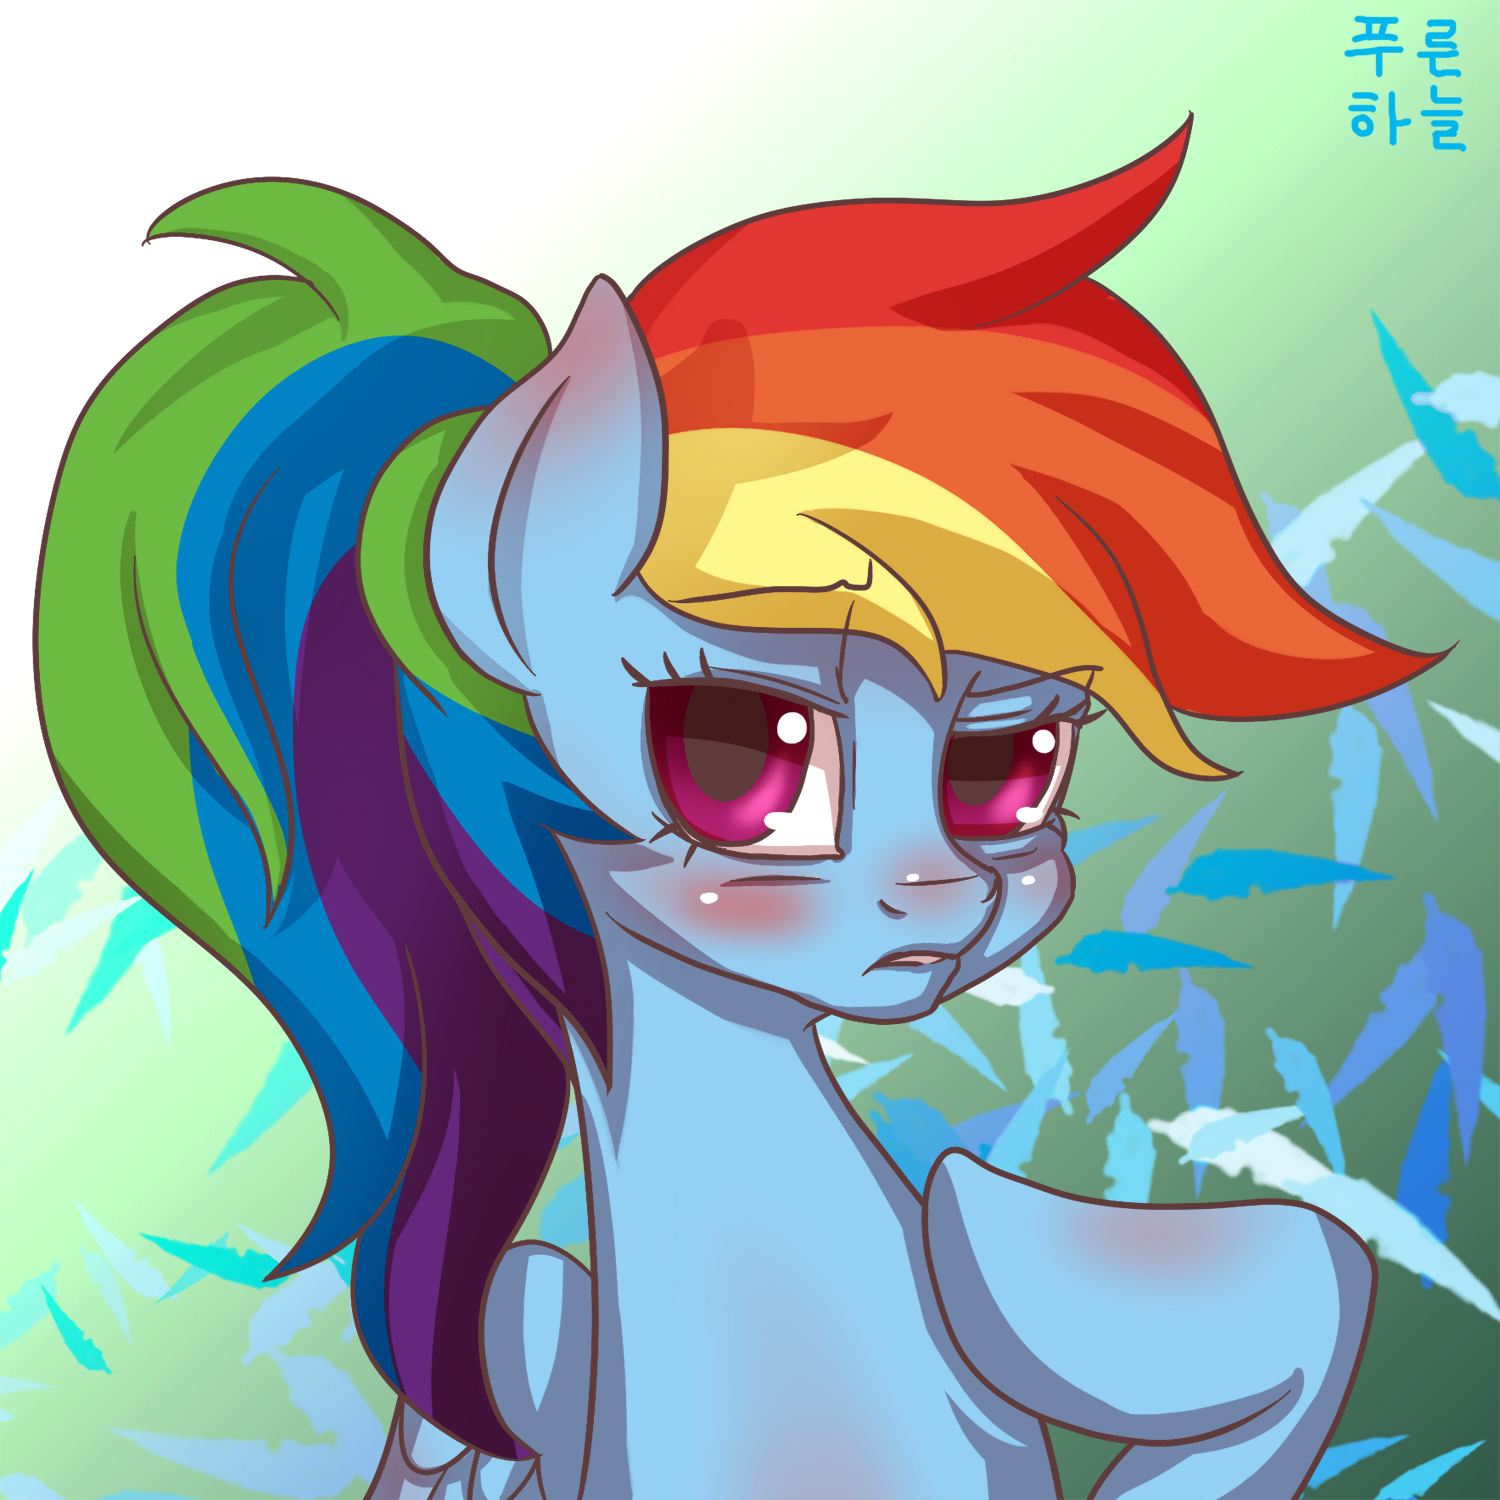 608037__safe_solo_rainbow+dash_alternate